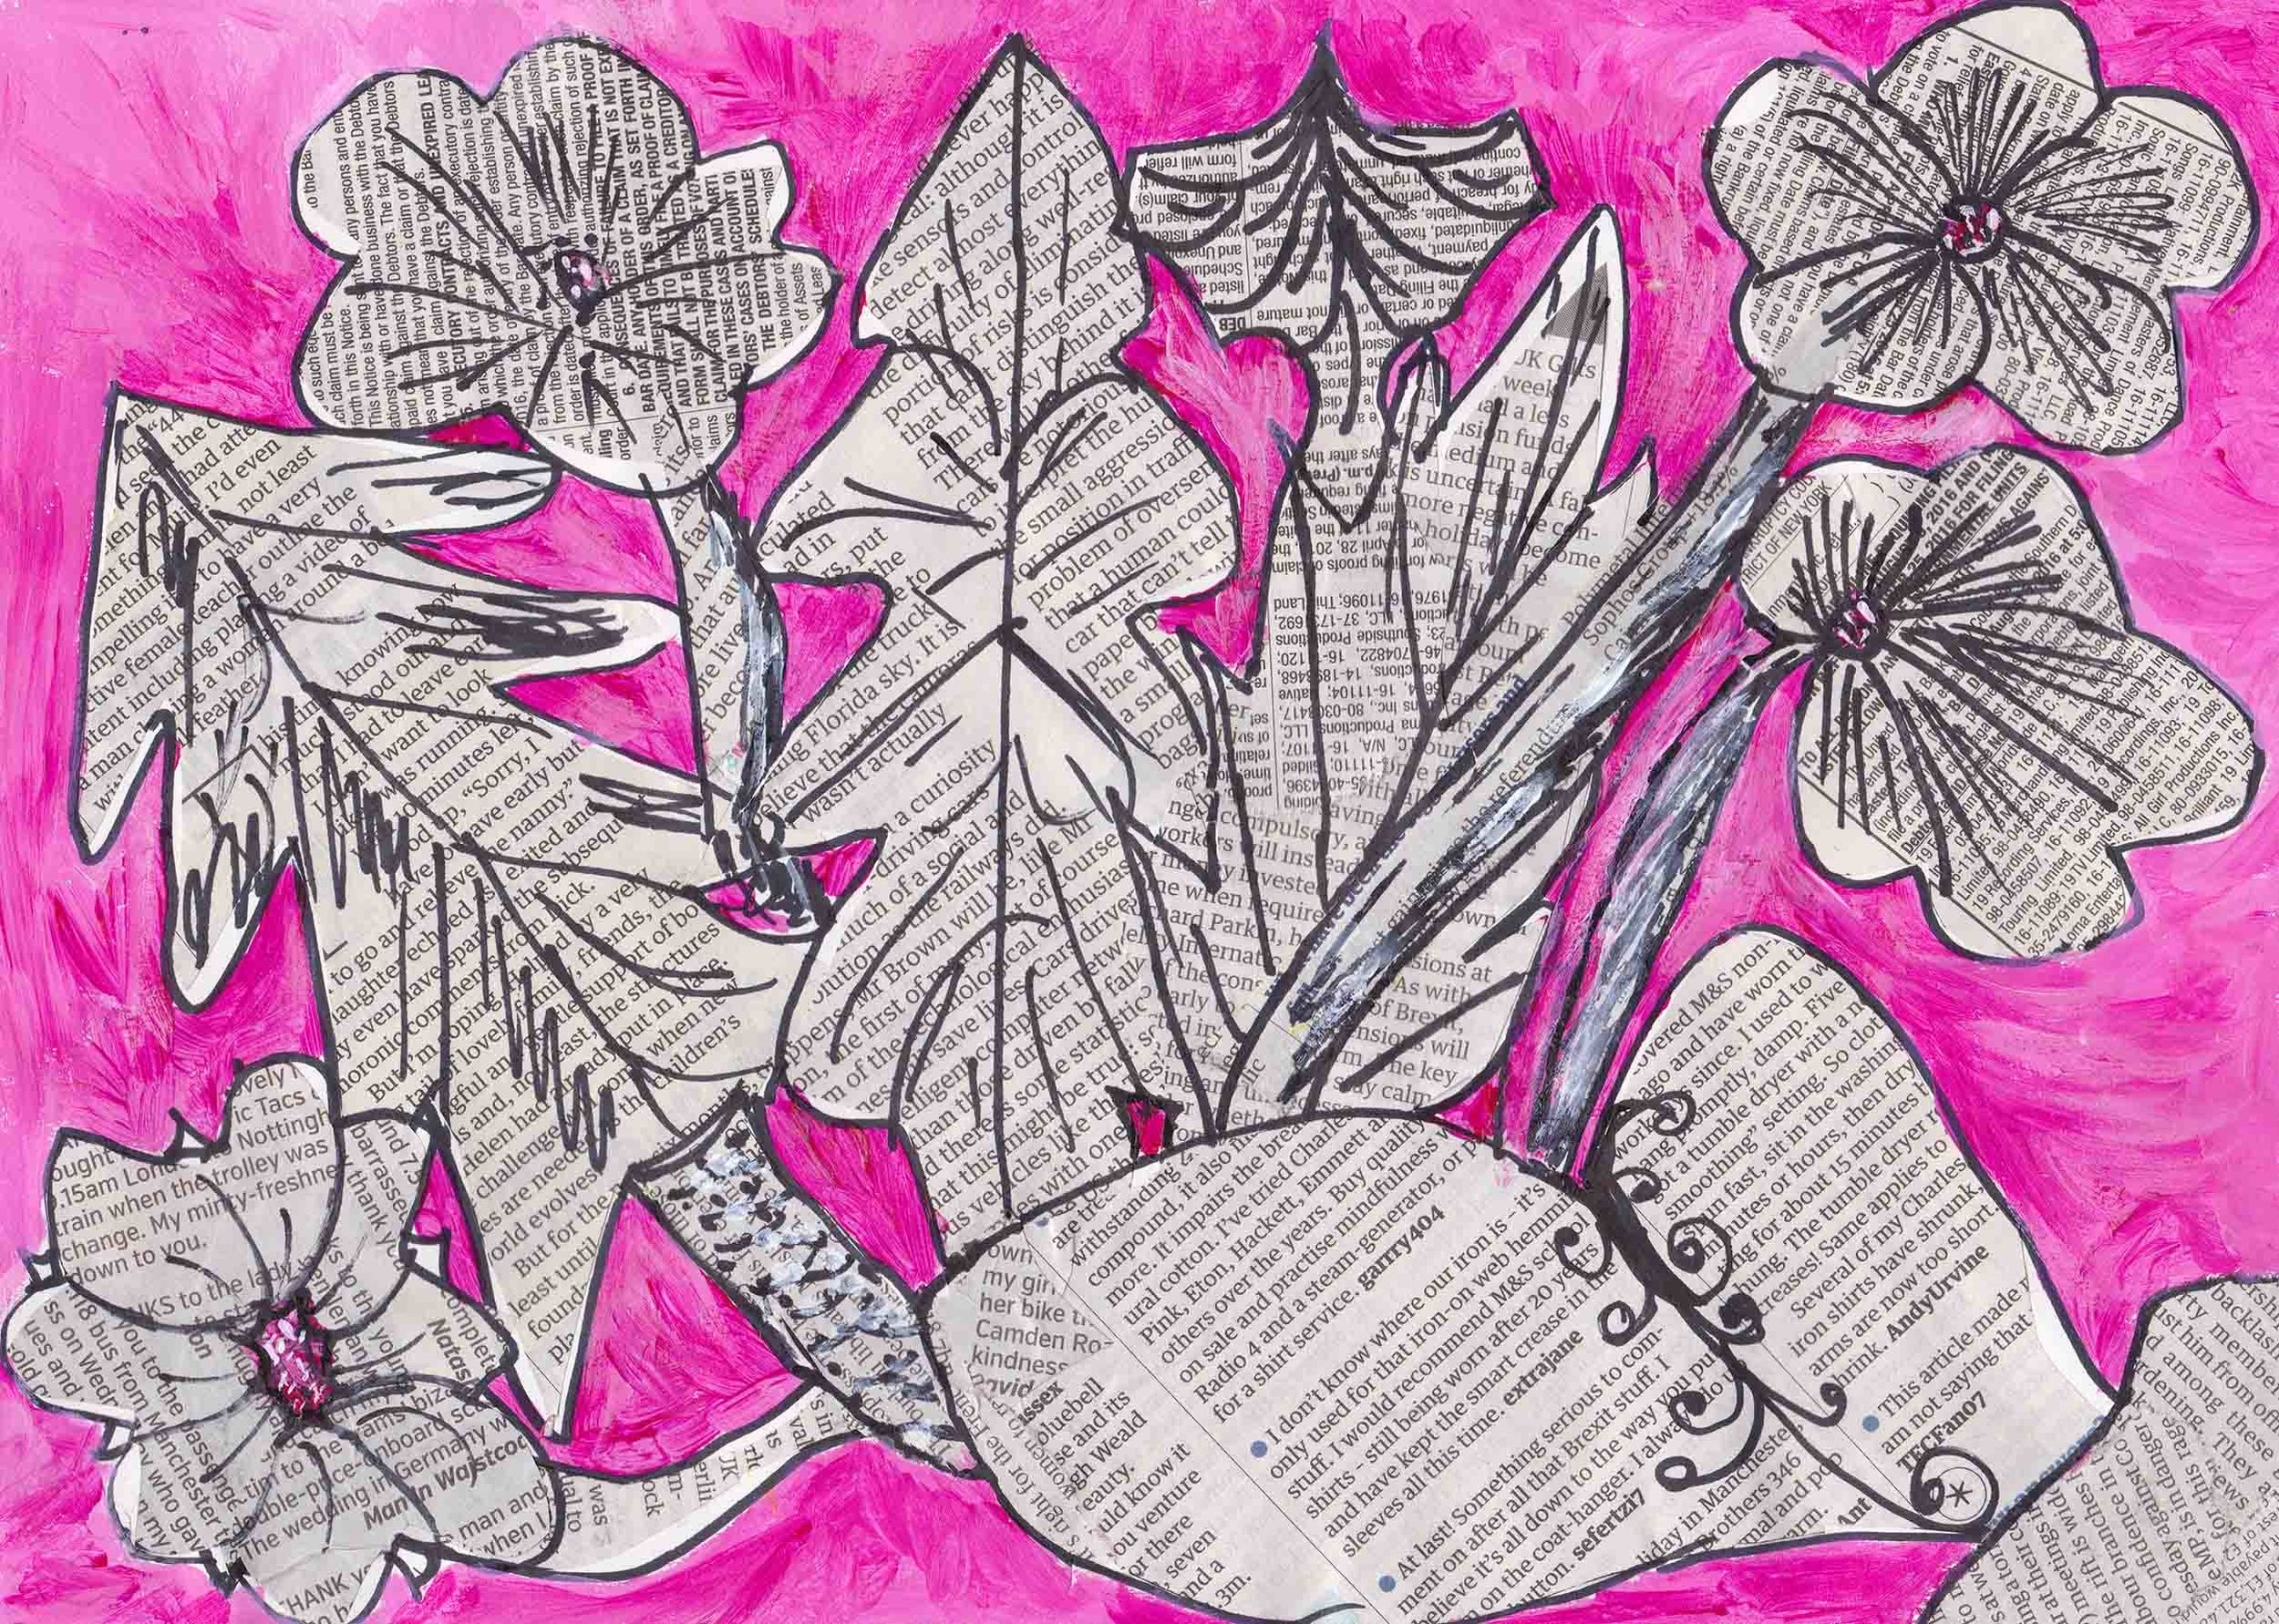 Flowers: Drawing and collage